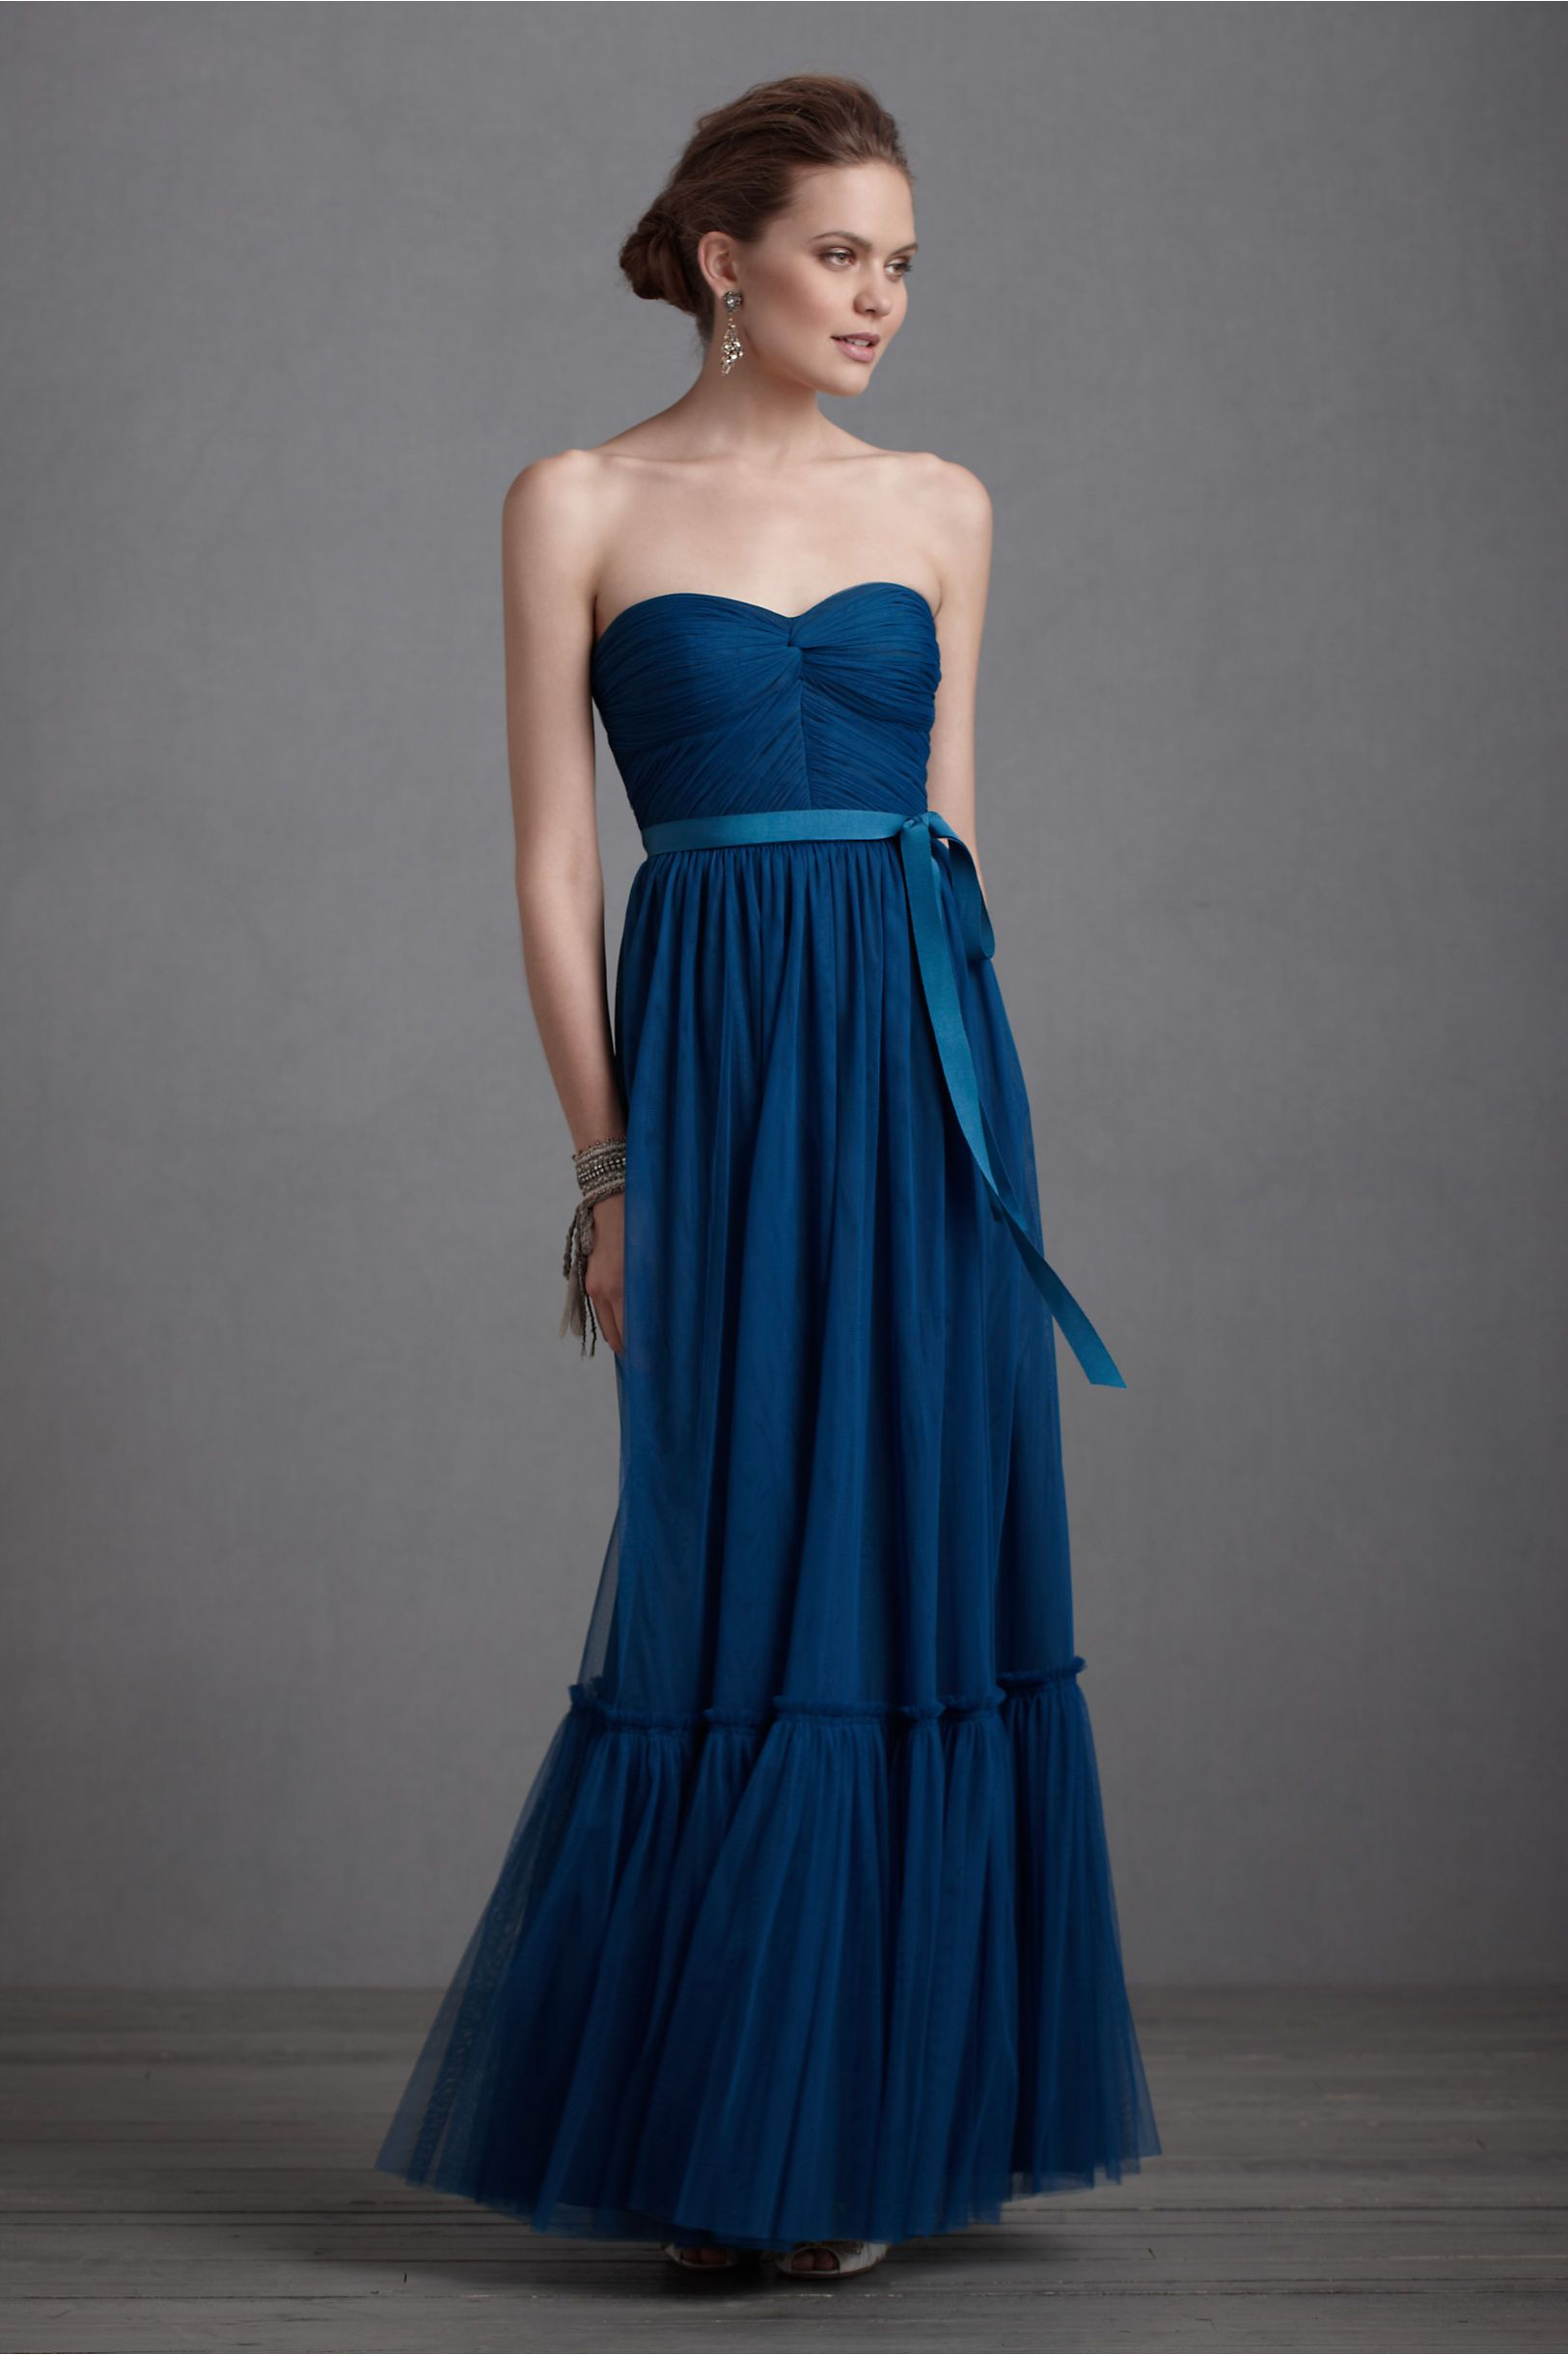 10  images about Finest Navy Bridesmaid Dresses Ideas on Pinterest ...